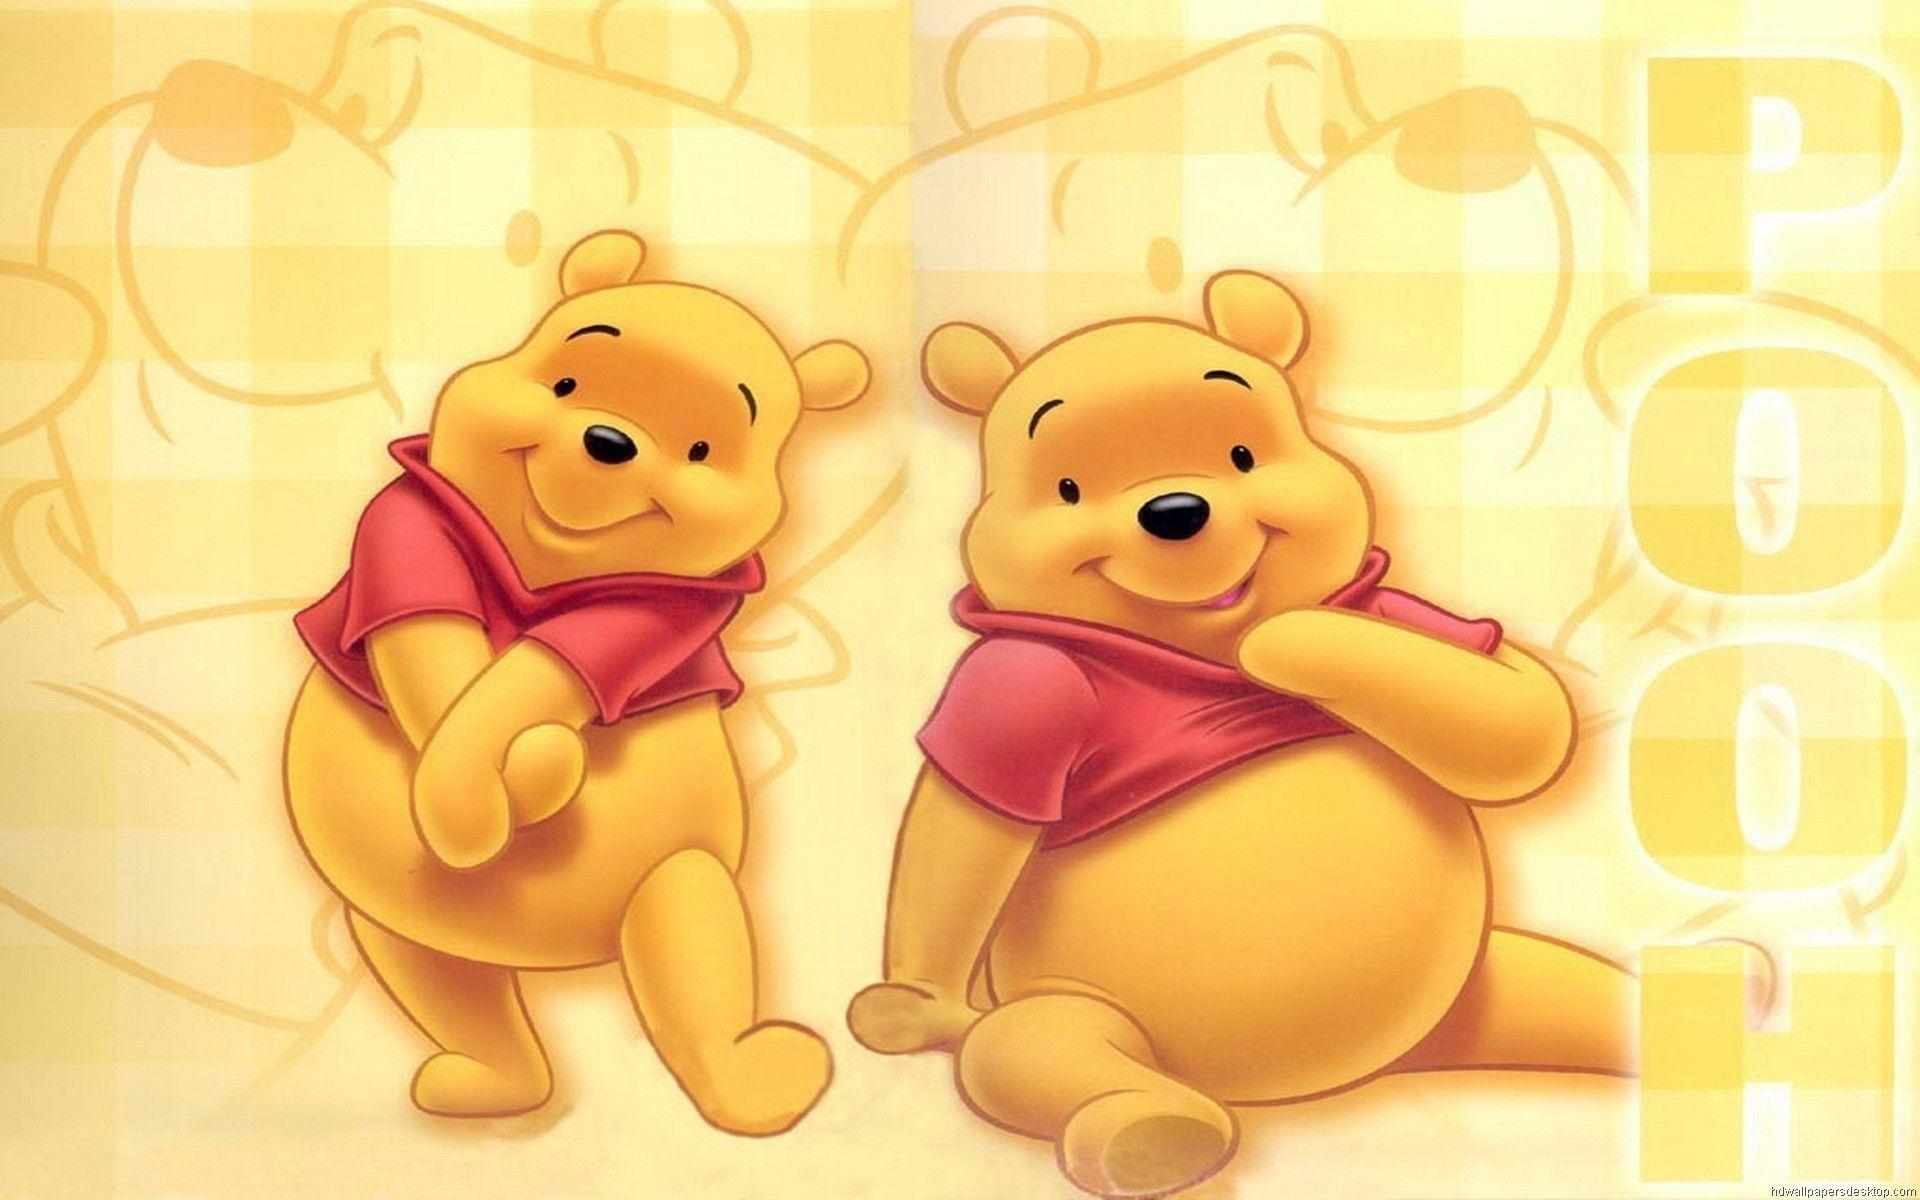 83 Winnie The Pooh Wallpapers | Winnie The Pooh Backgrounds